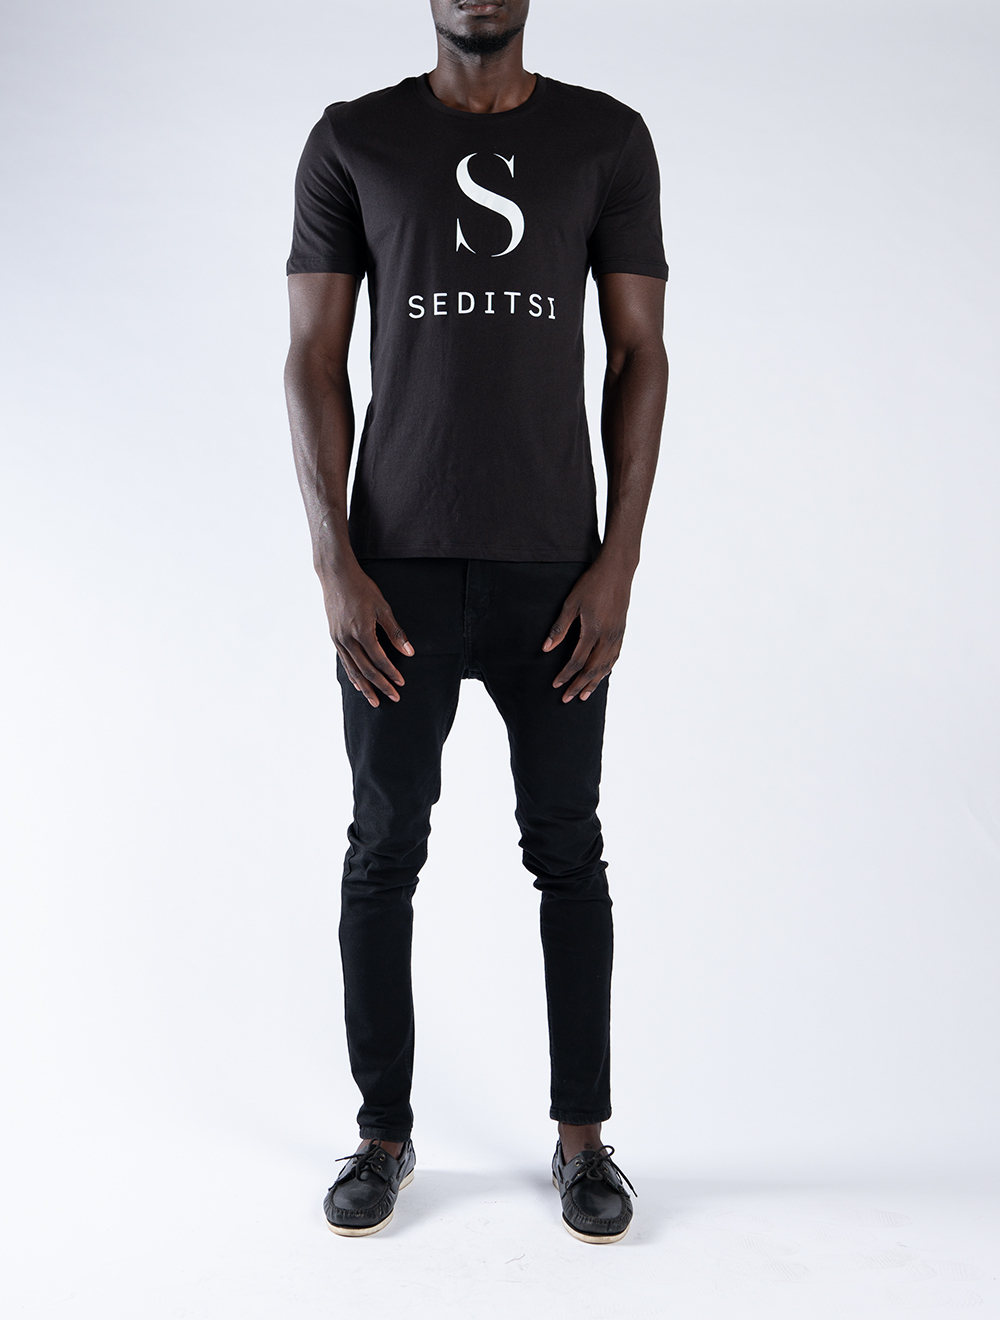 Seditsi Original T-shirt – Black